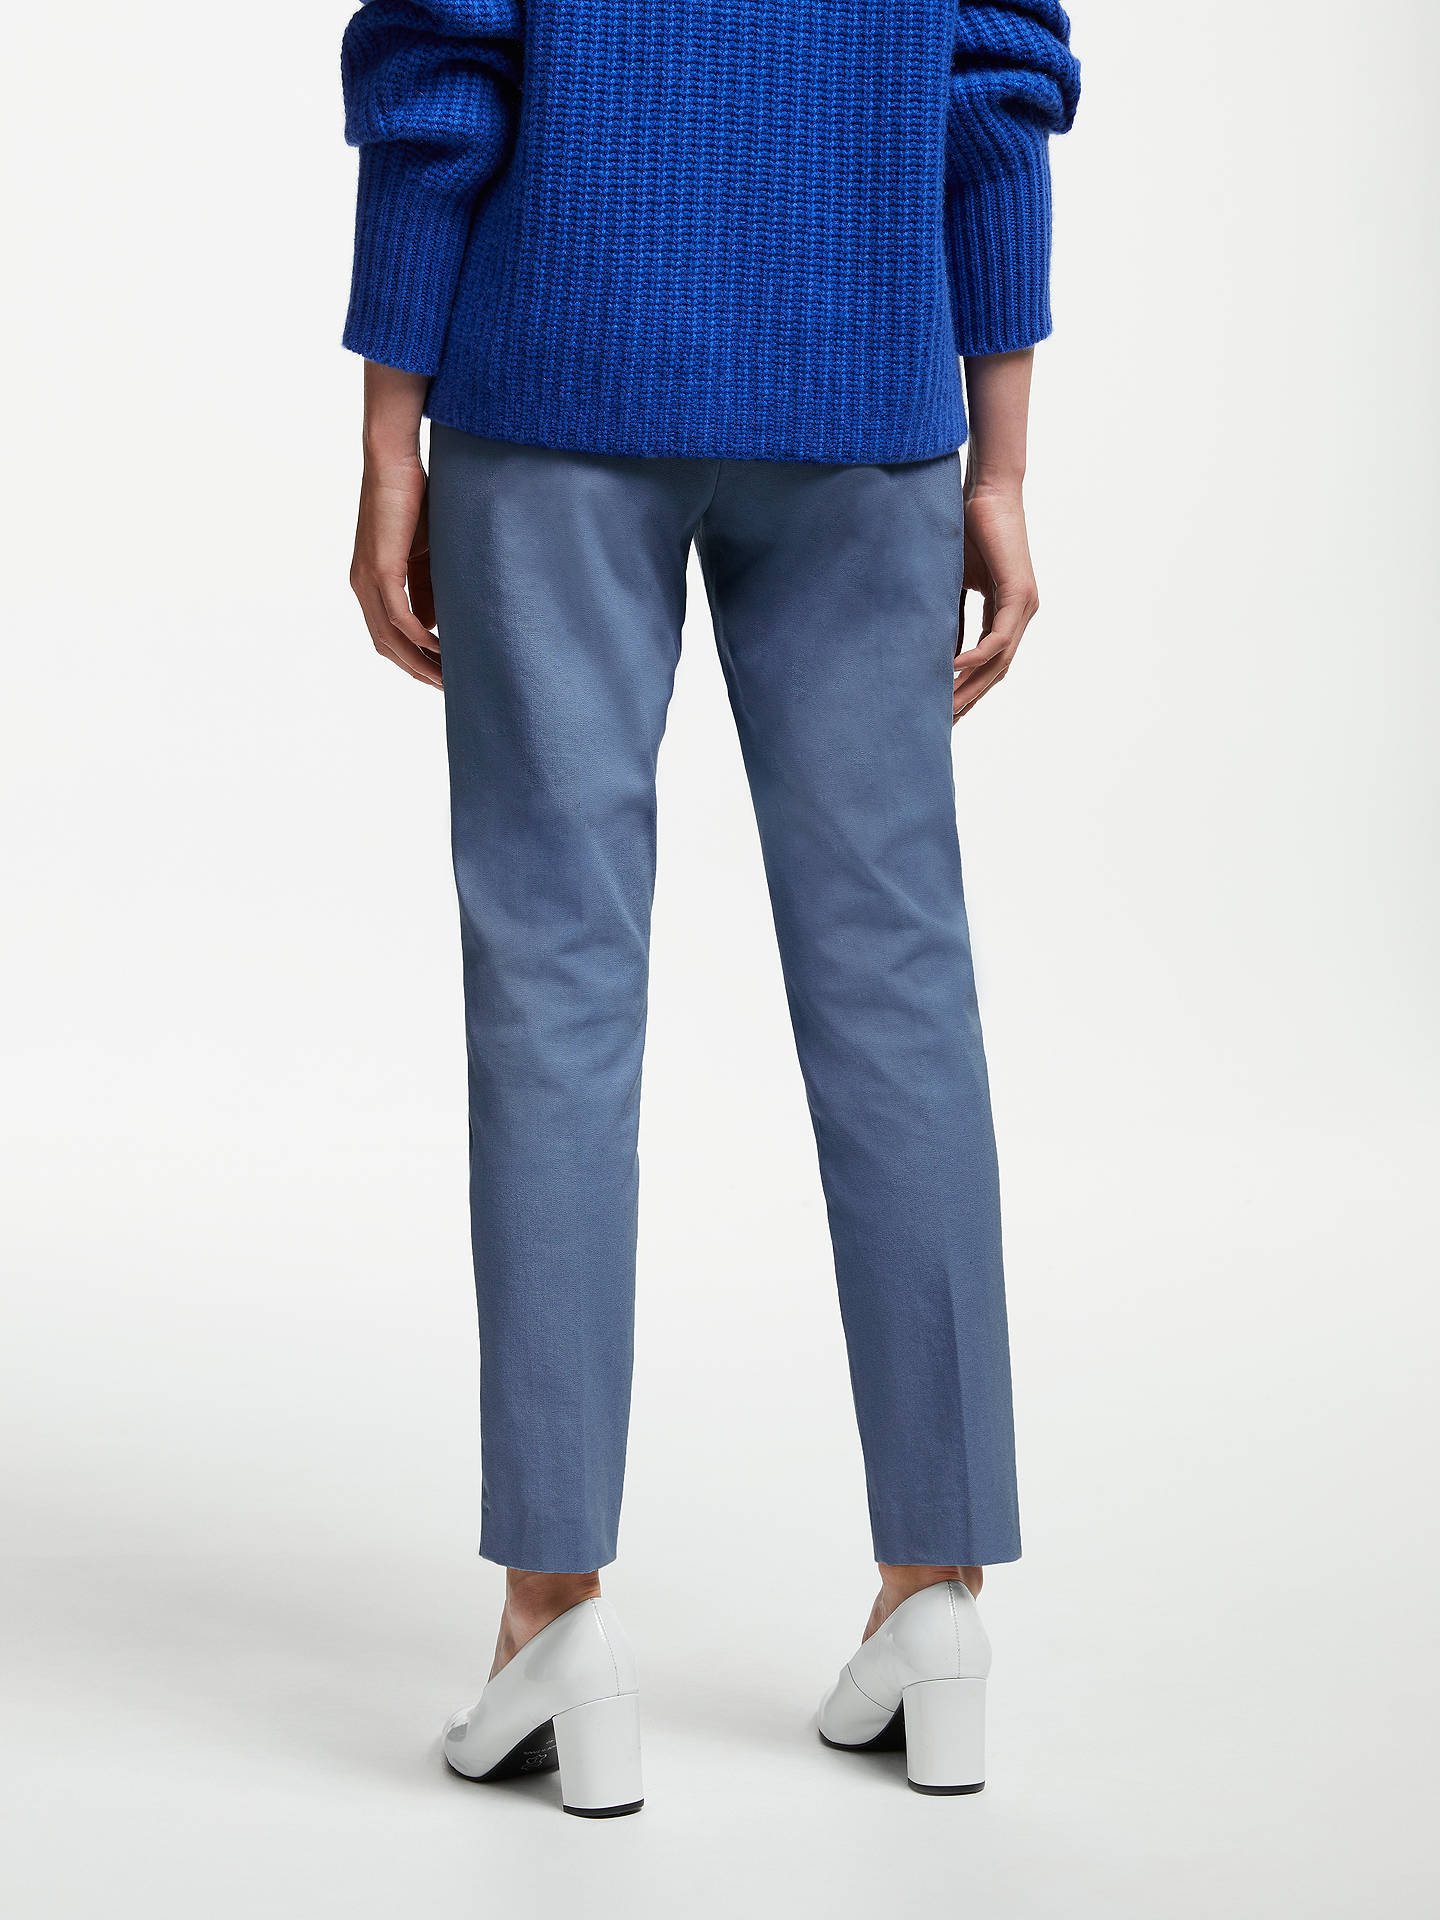 BuyJohn Lewis & Partners Dionne Trousers, Blue, 14 Online at johnlewis.com